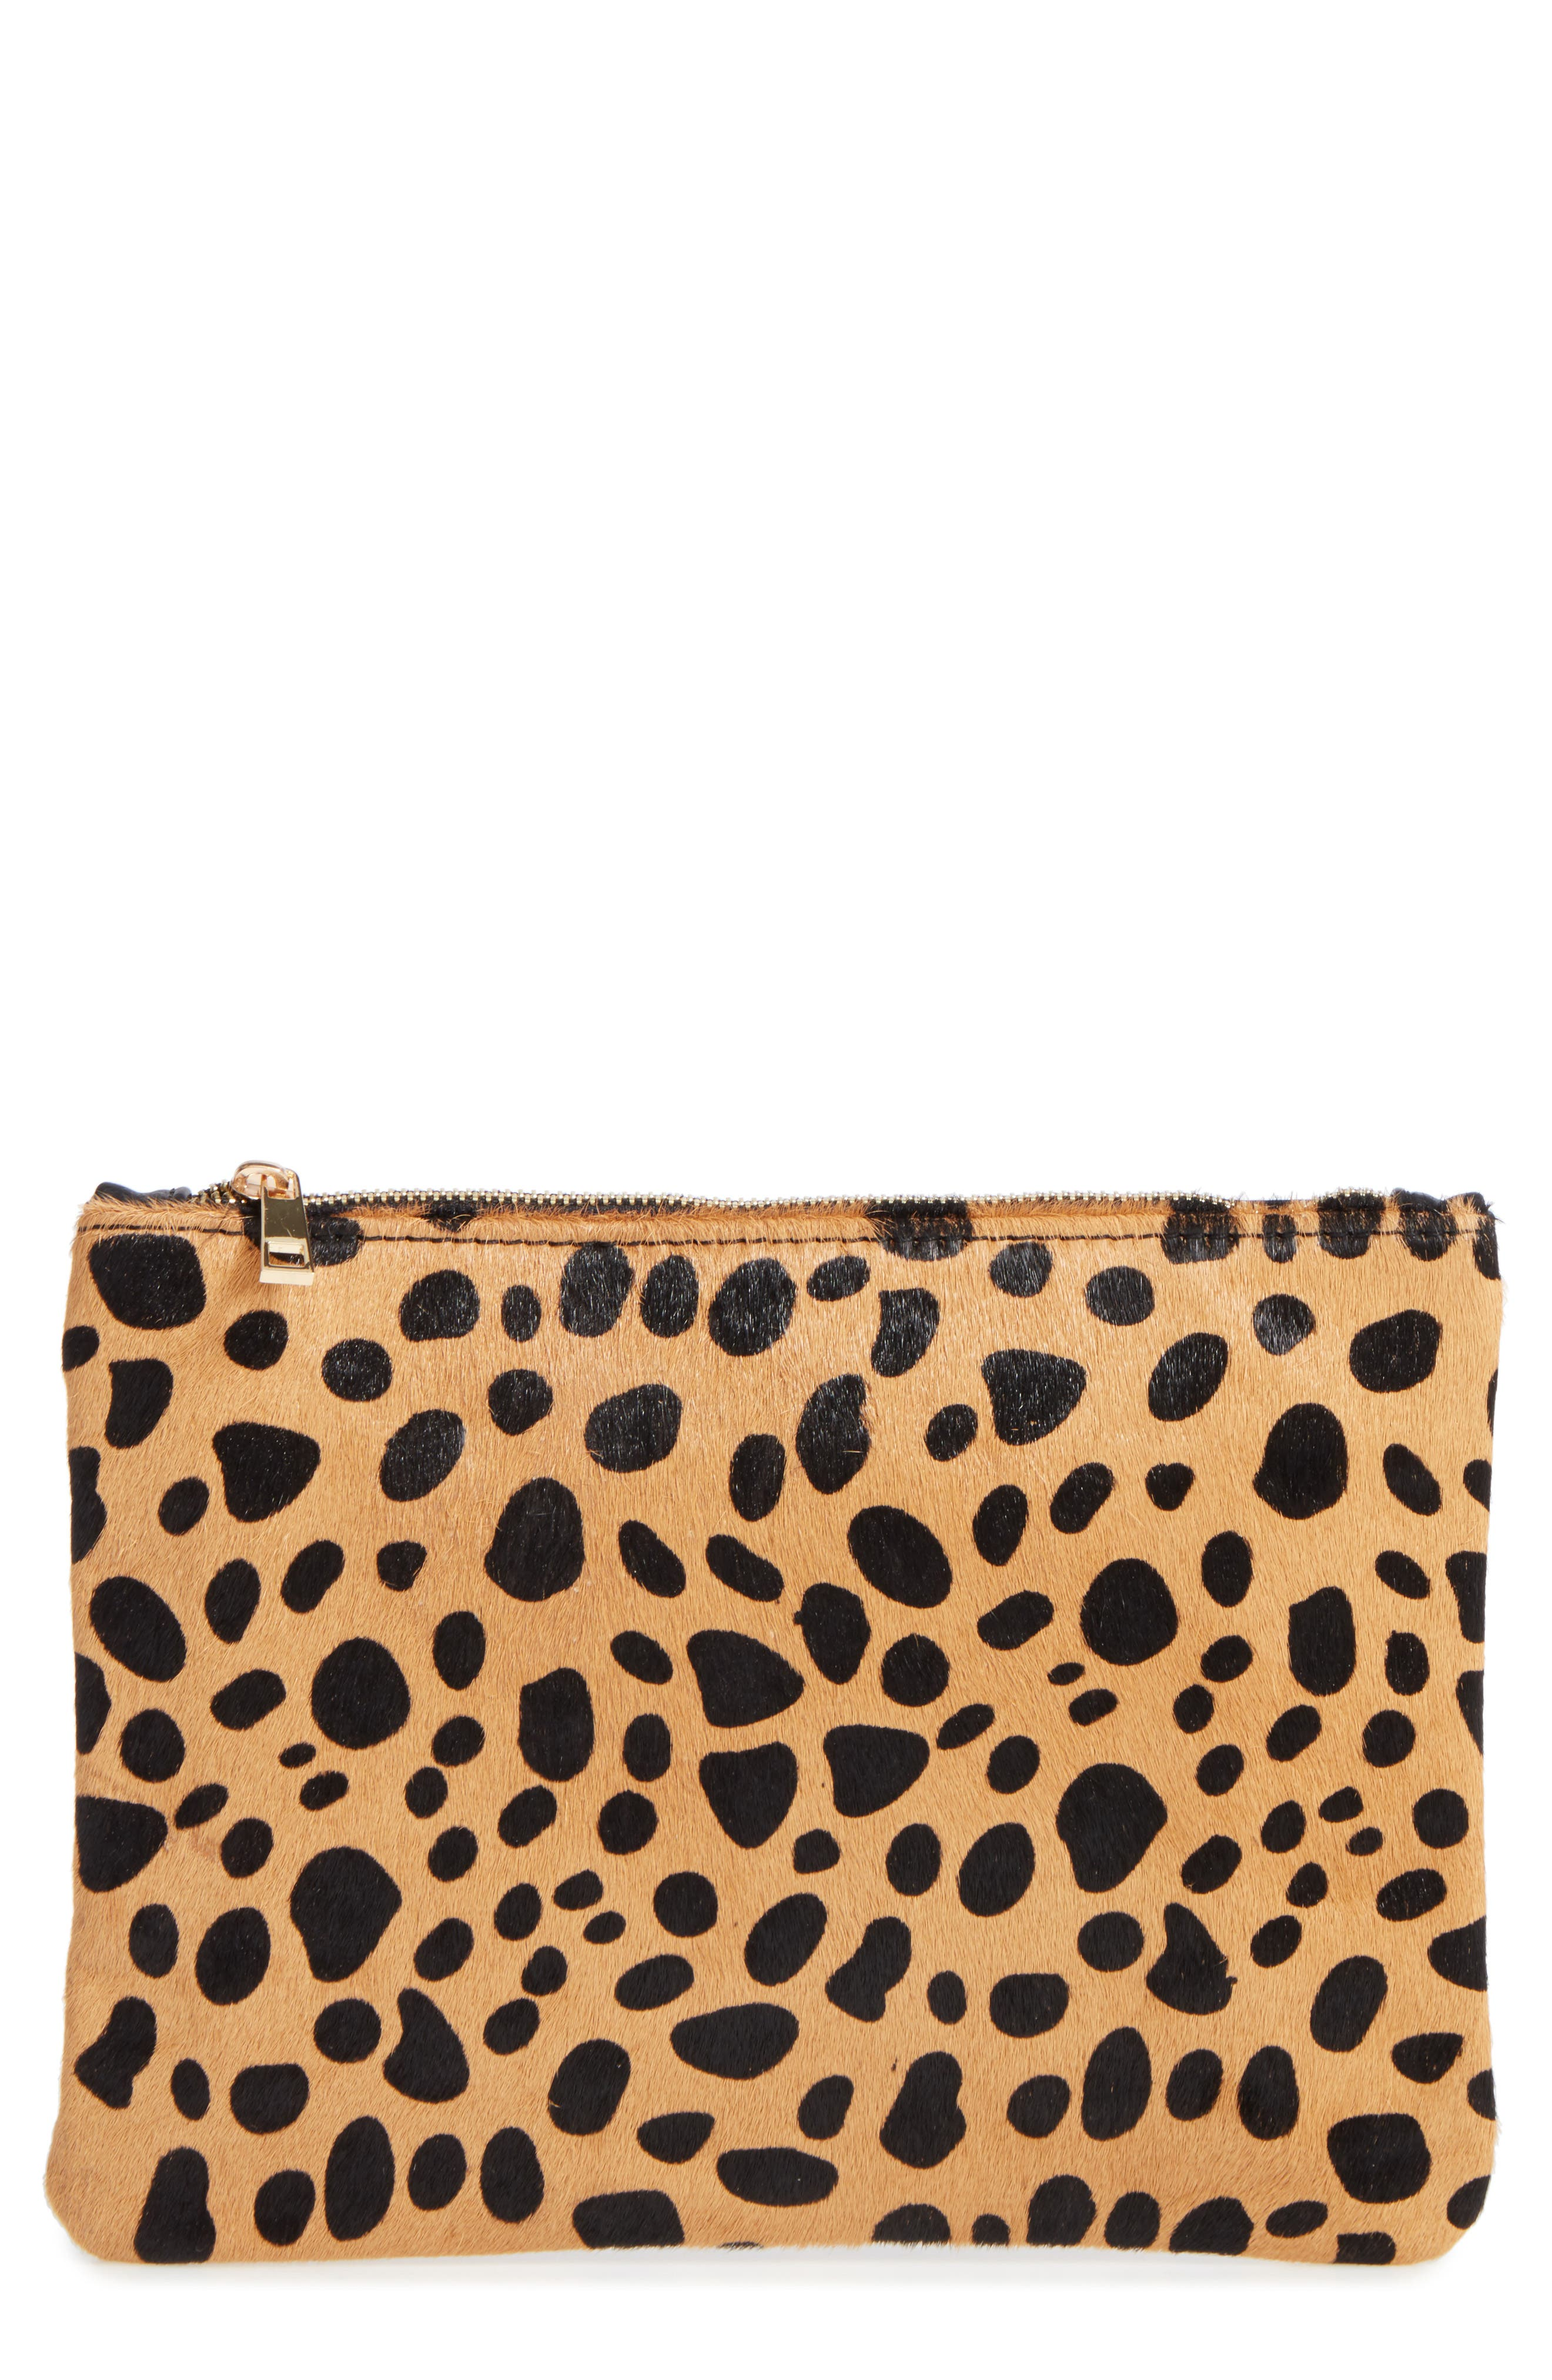 Alternate Image 1 Selected - BP. Leopard Print Genuine Calf Hair Pouch